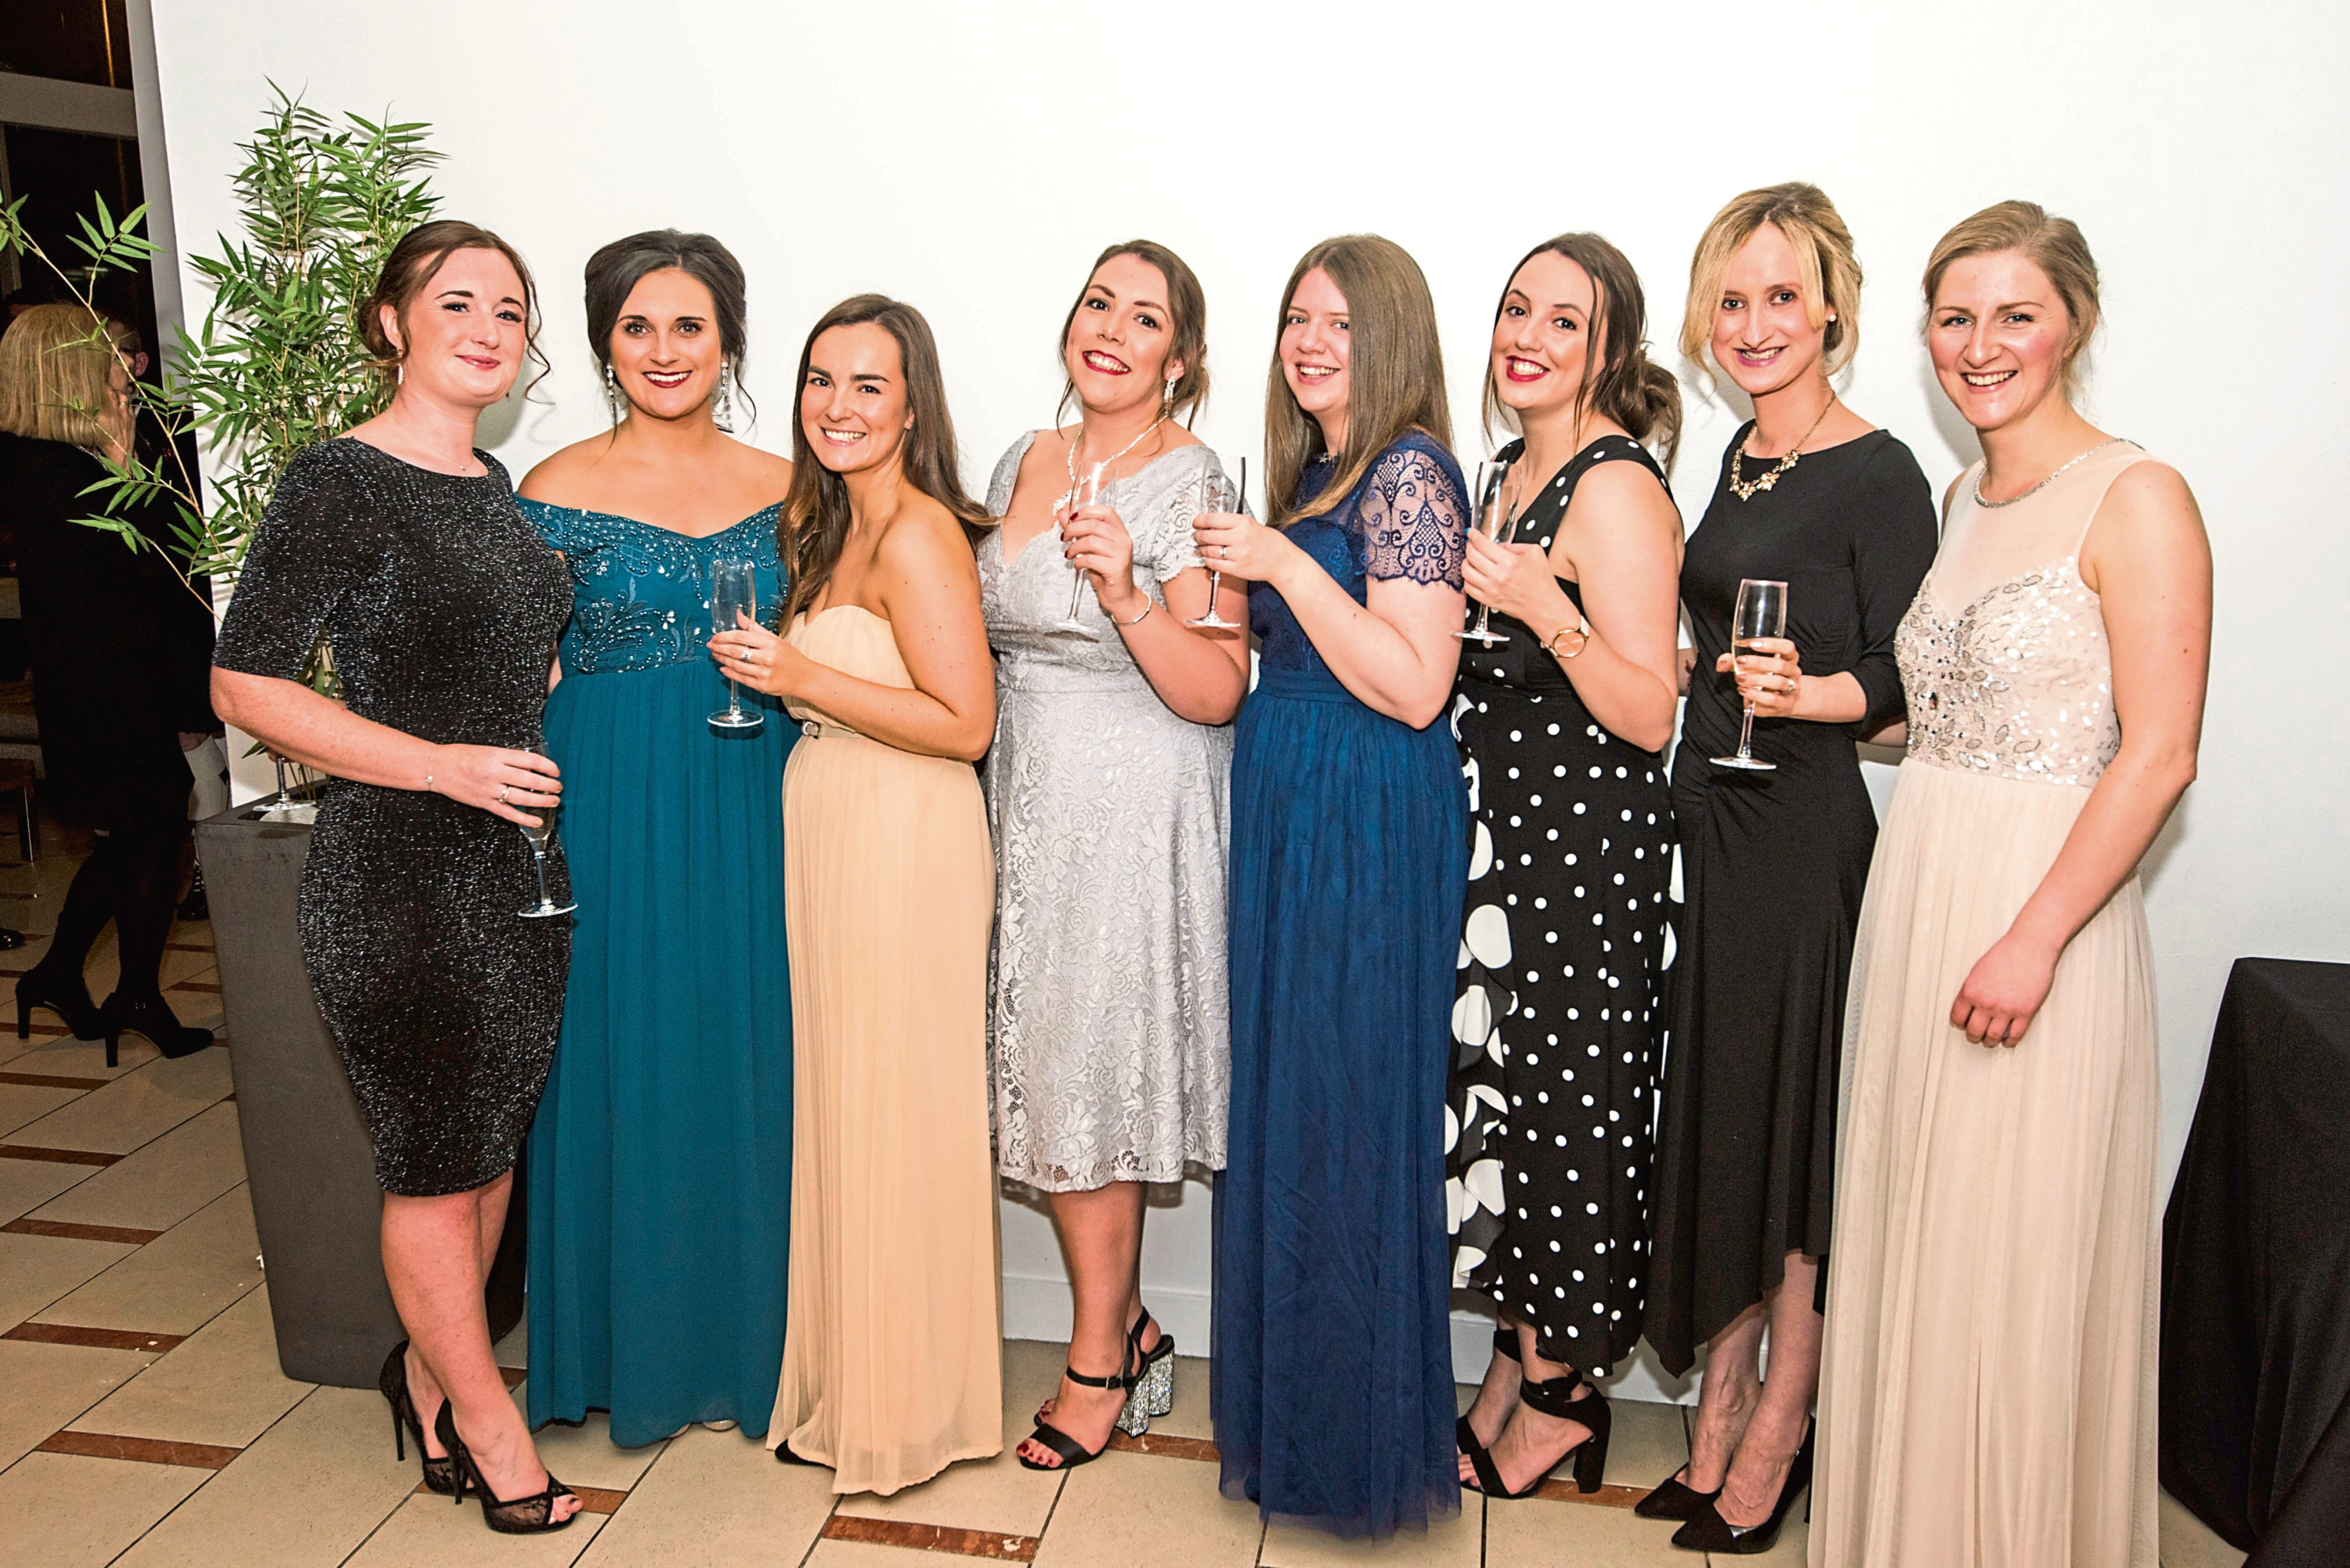 The Dundee staff (from left): Rachel Bell, Sandi Drummond, Rachel Matthew, Michelle Murray, Katherine Thomson, Lauren Malloch, Paula McAllister and Susan Beattie